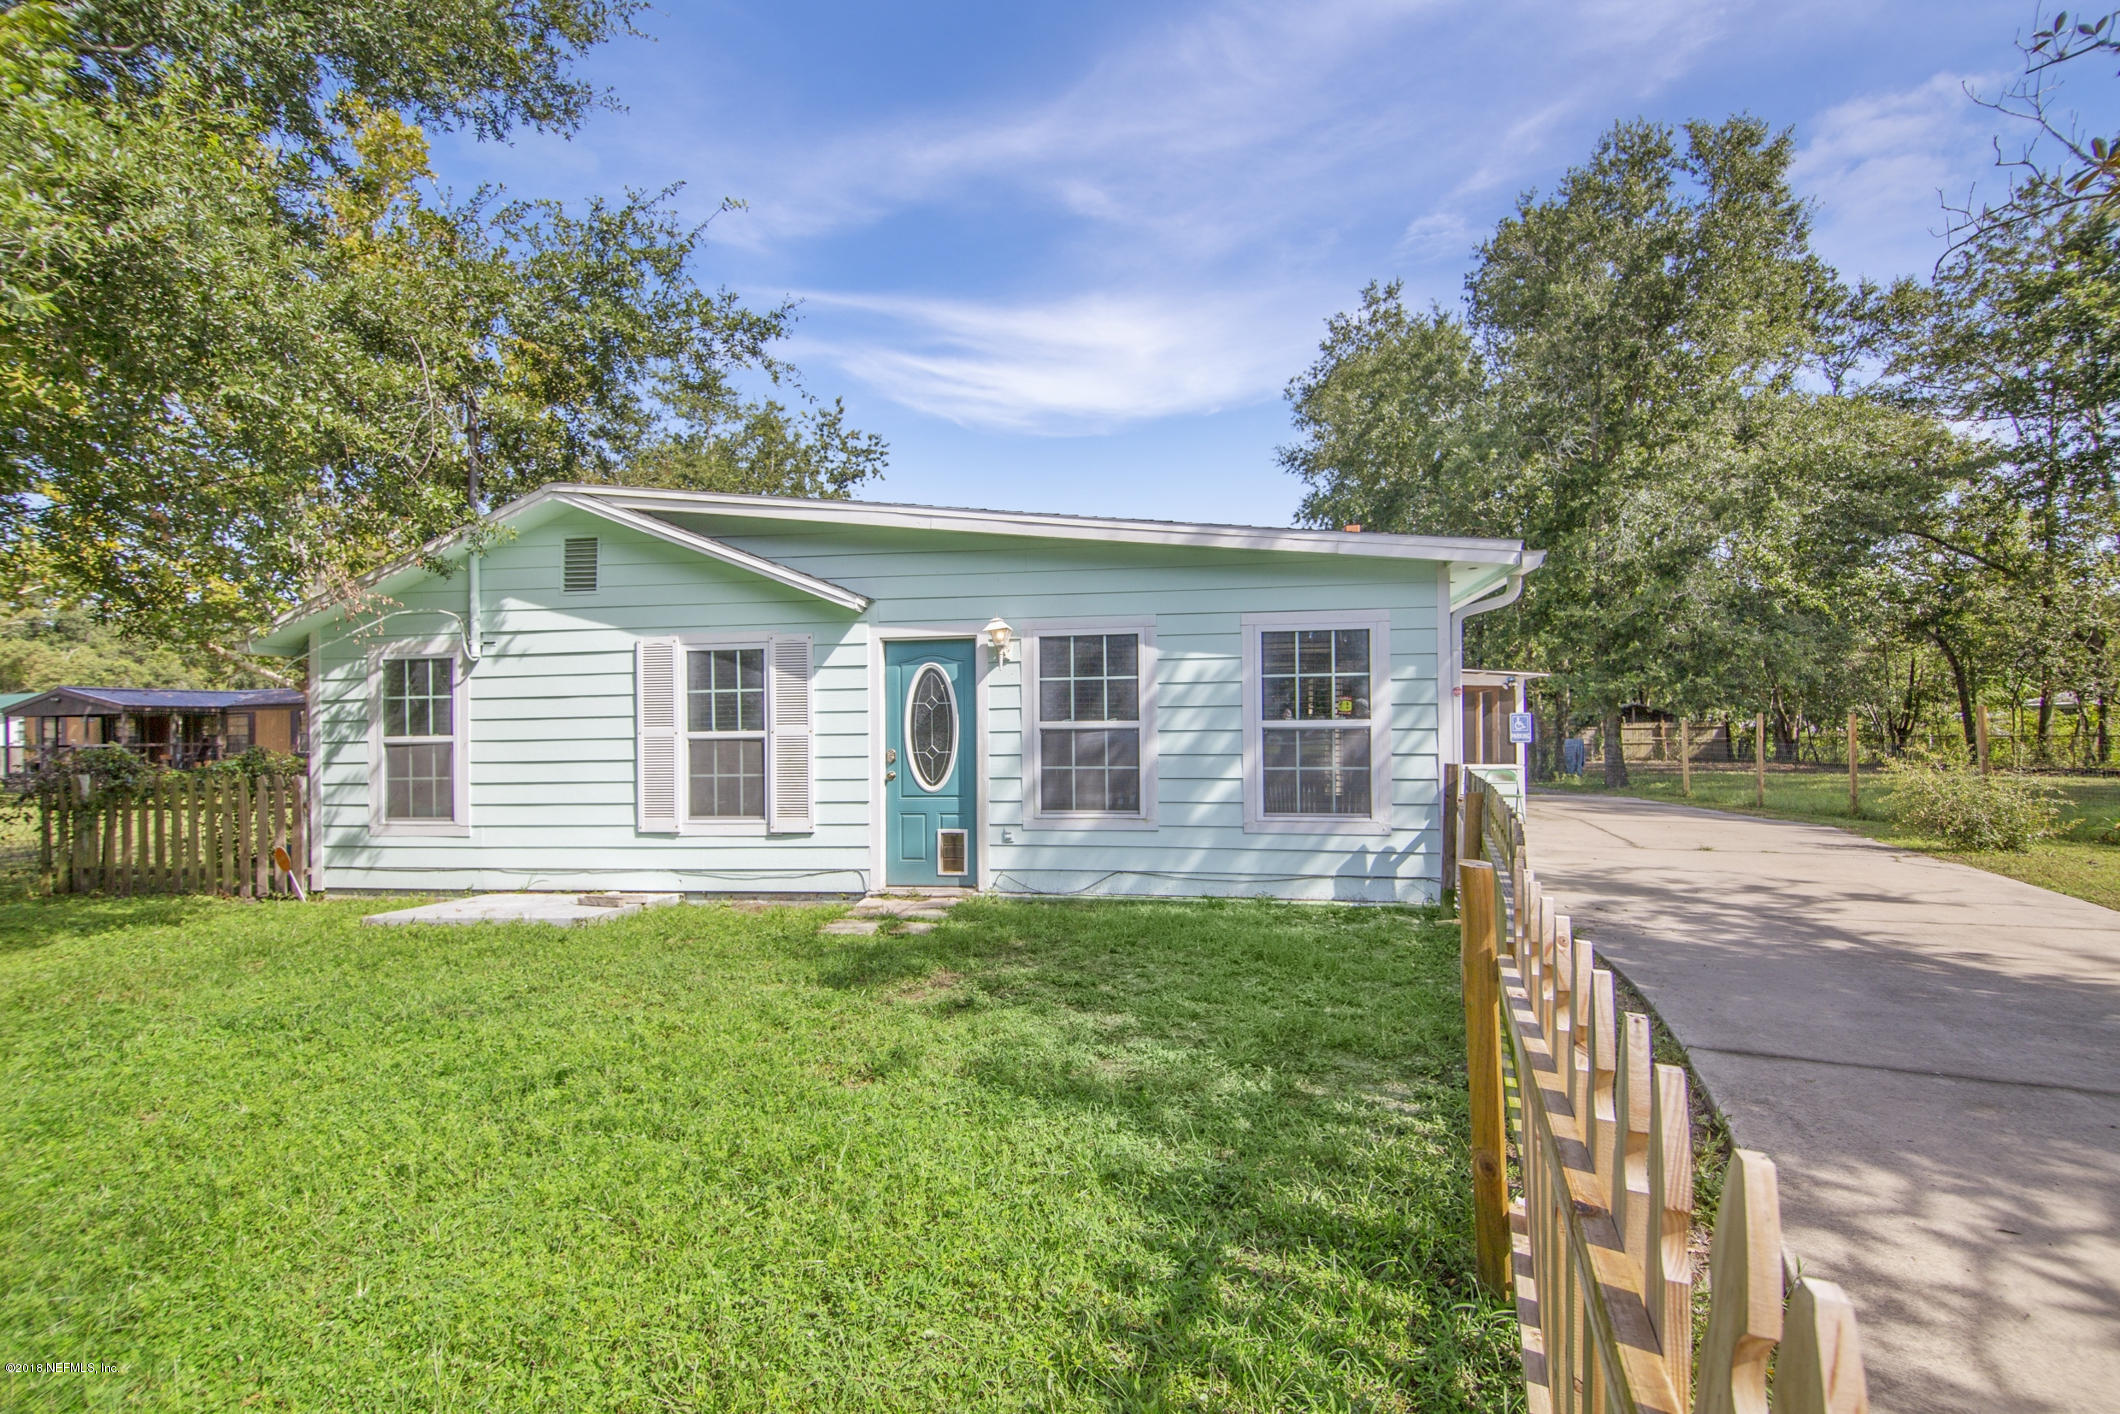 1889 FAYE, JACKSONVILLE, FLORIDA 32218, 3 Bedrooms Bedrooms, ,1 BathroomBathrooms,Residential - single family,For sale,FAYE,956950